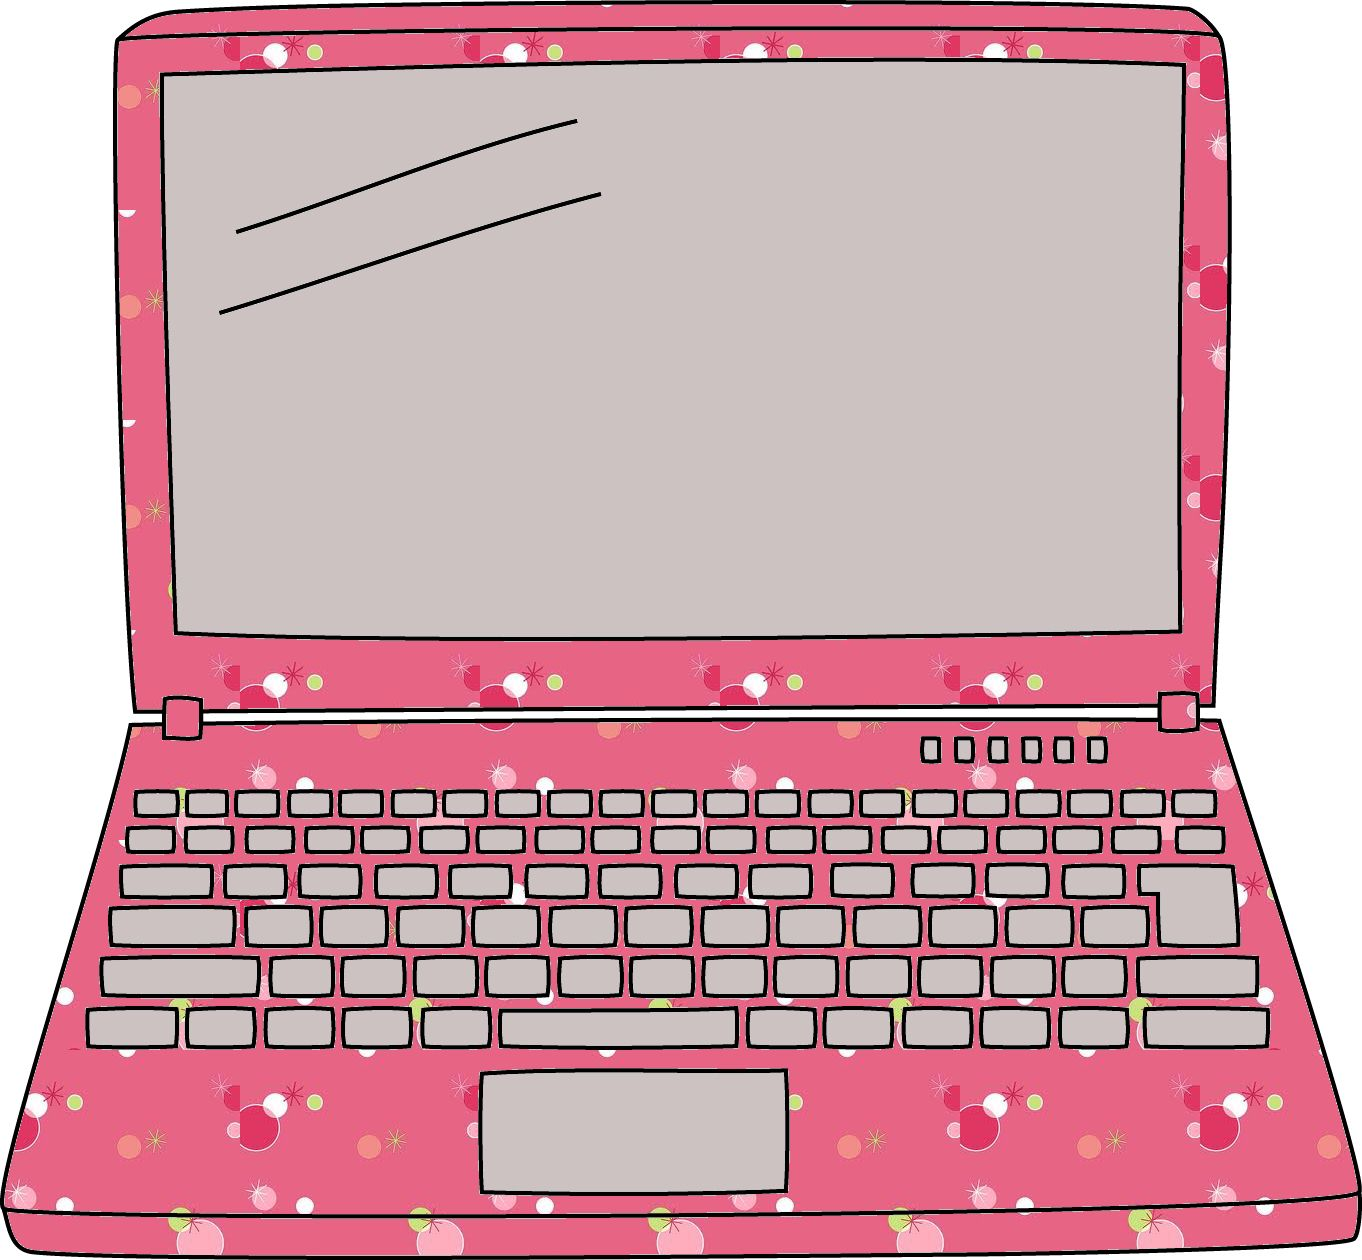 Laptop clipart pink laptop. Lappy school clip art